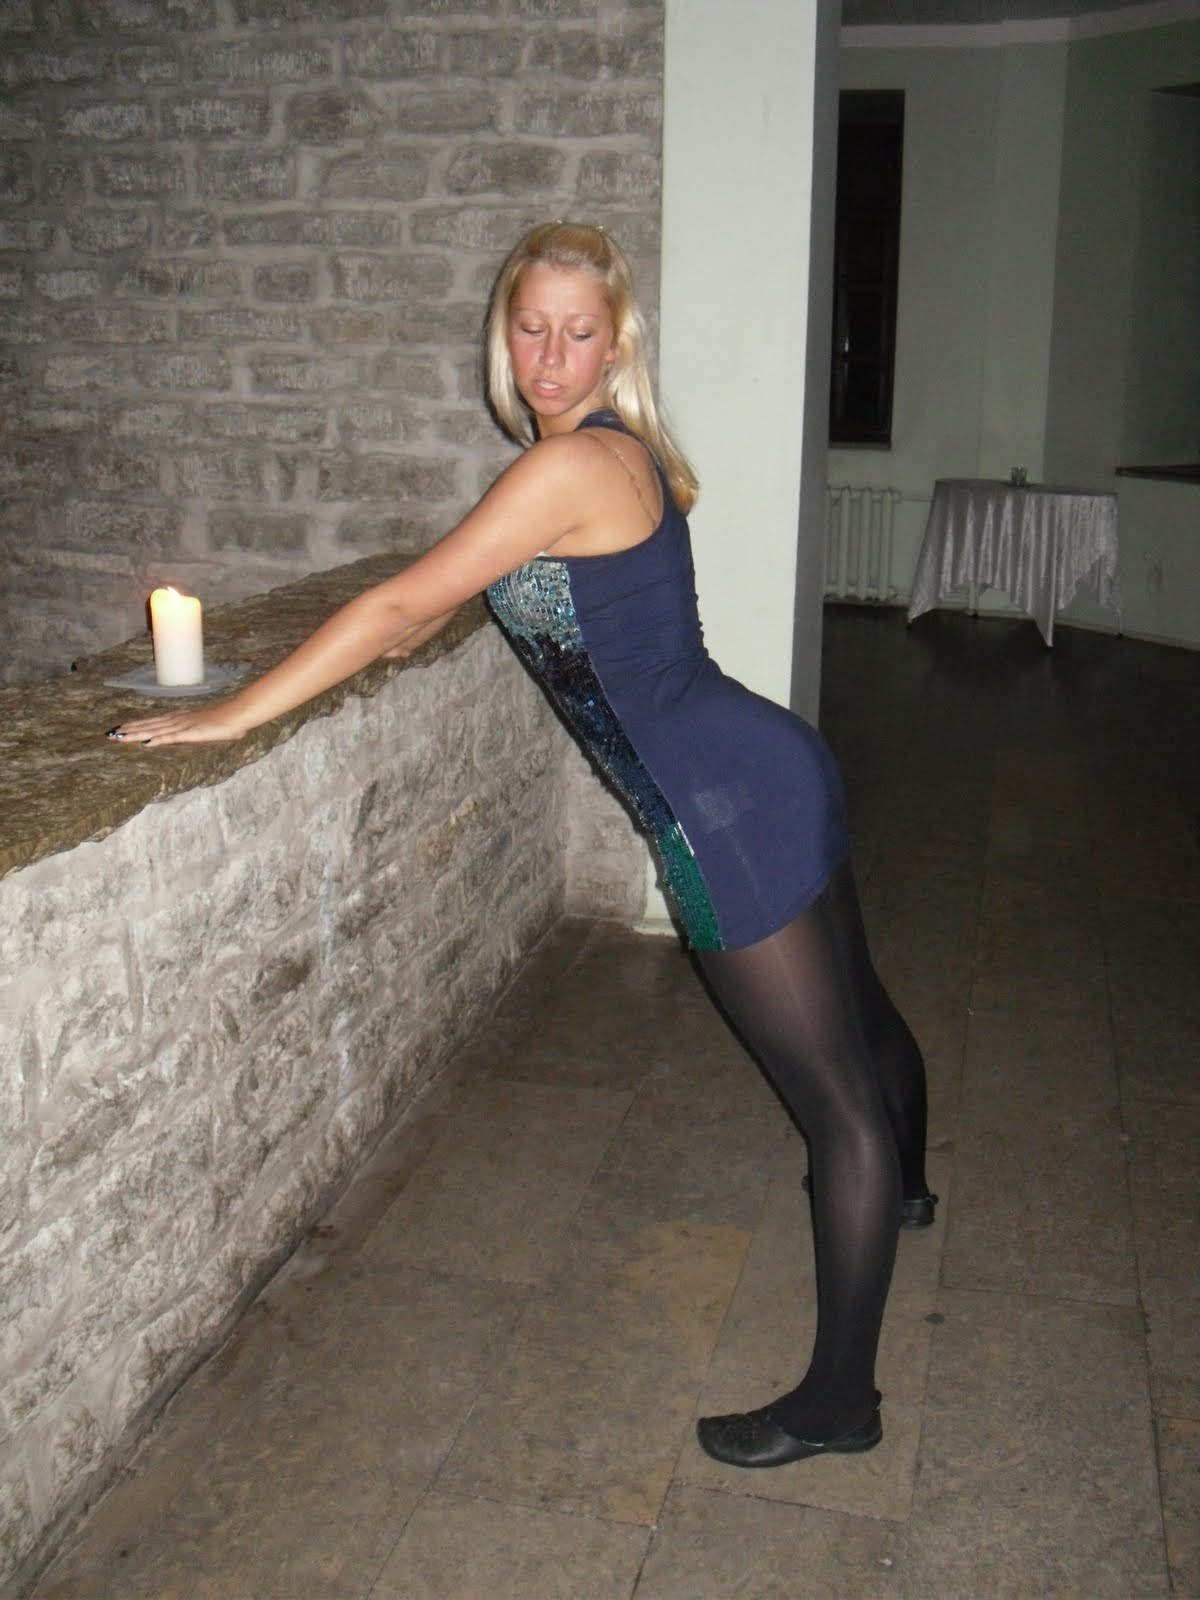 Pantyhose improve health legs